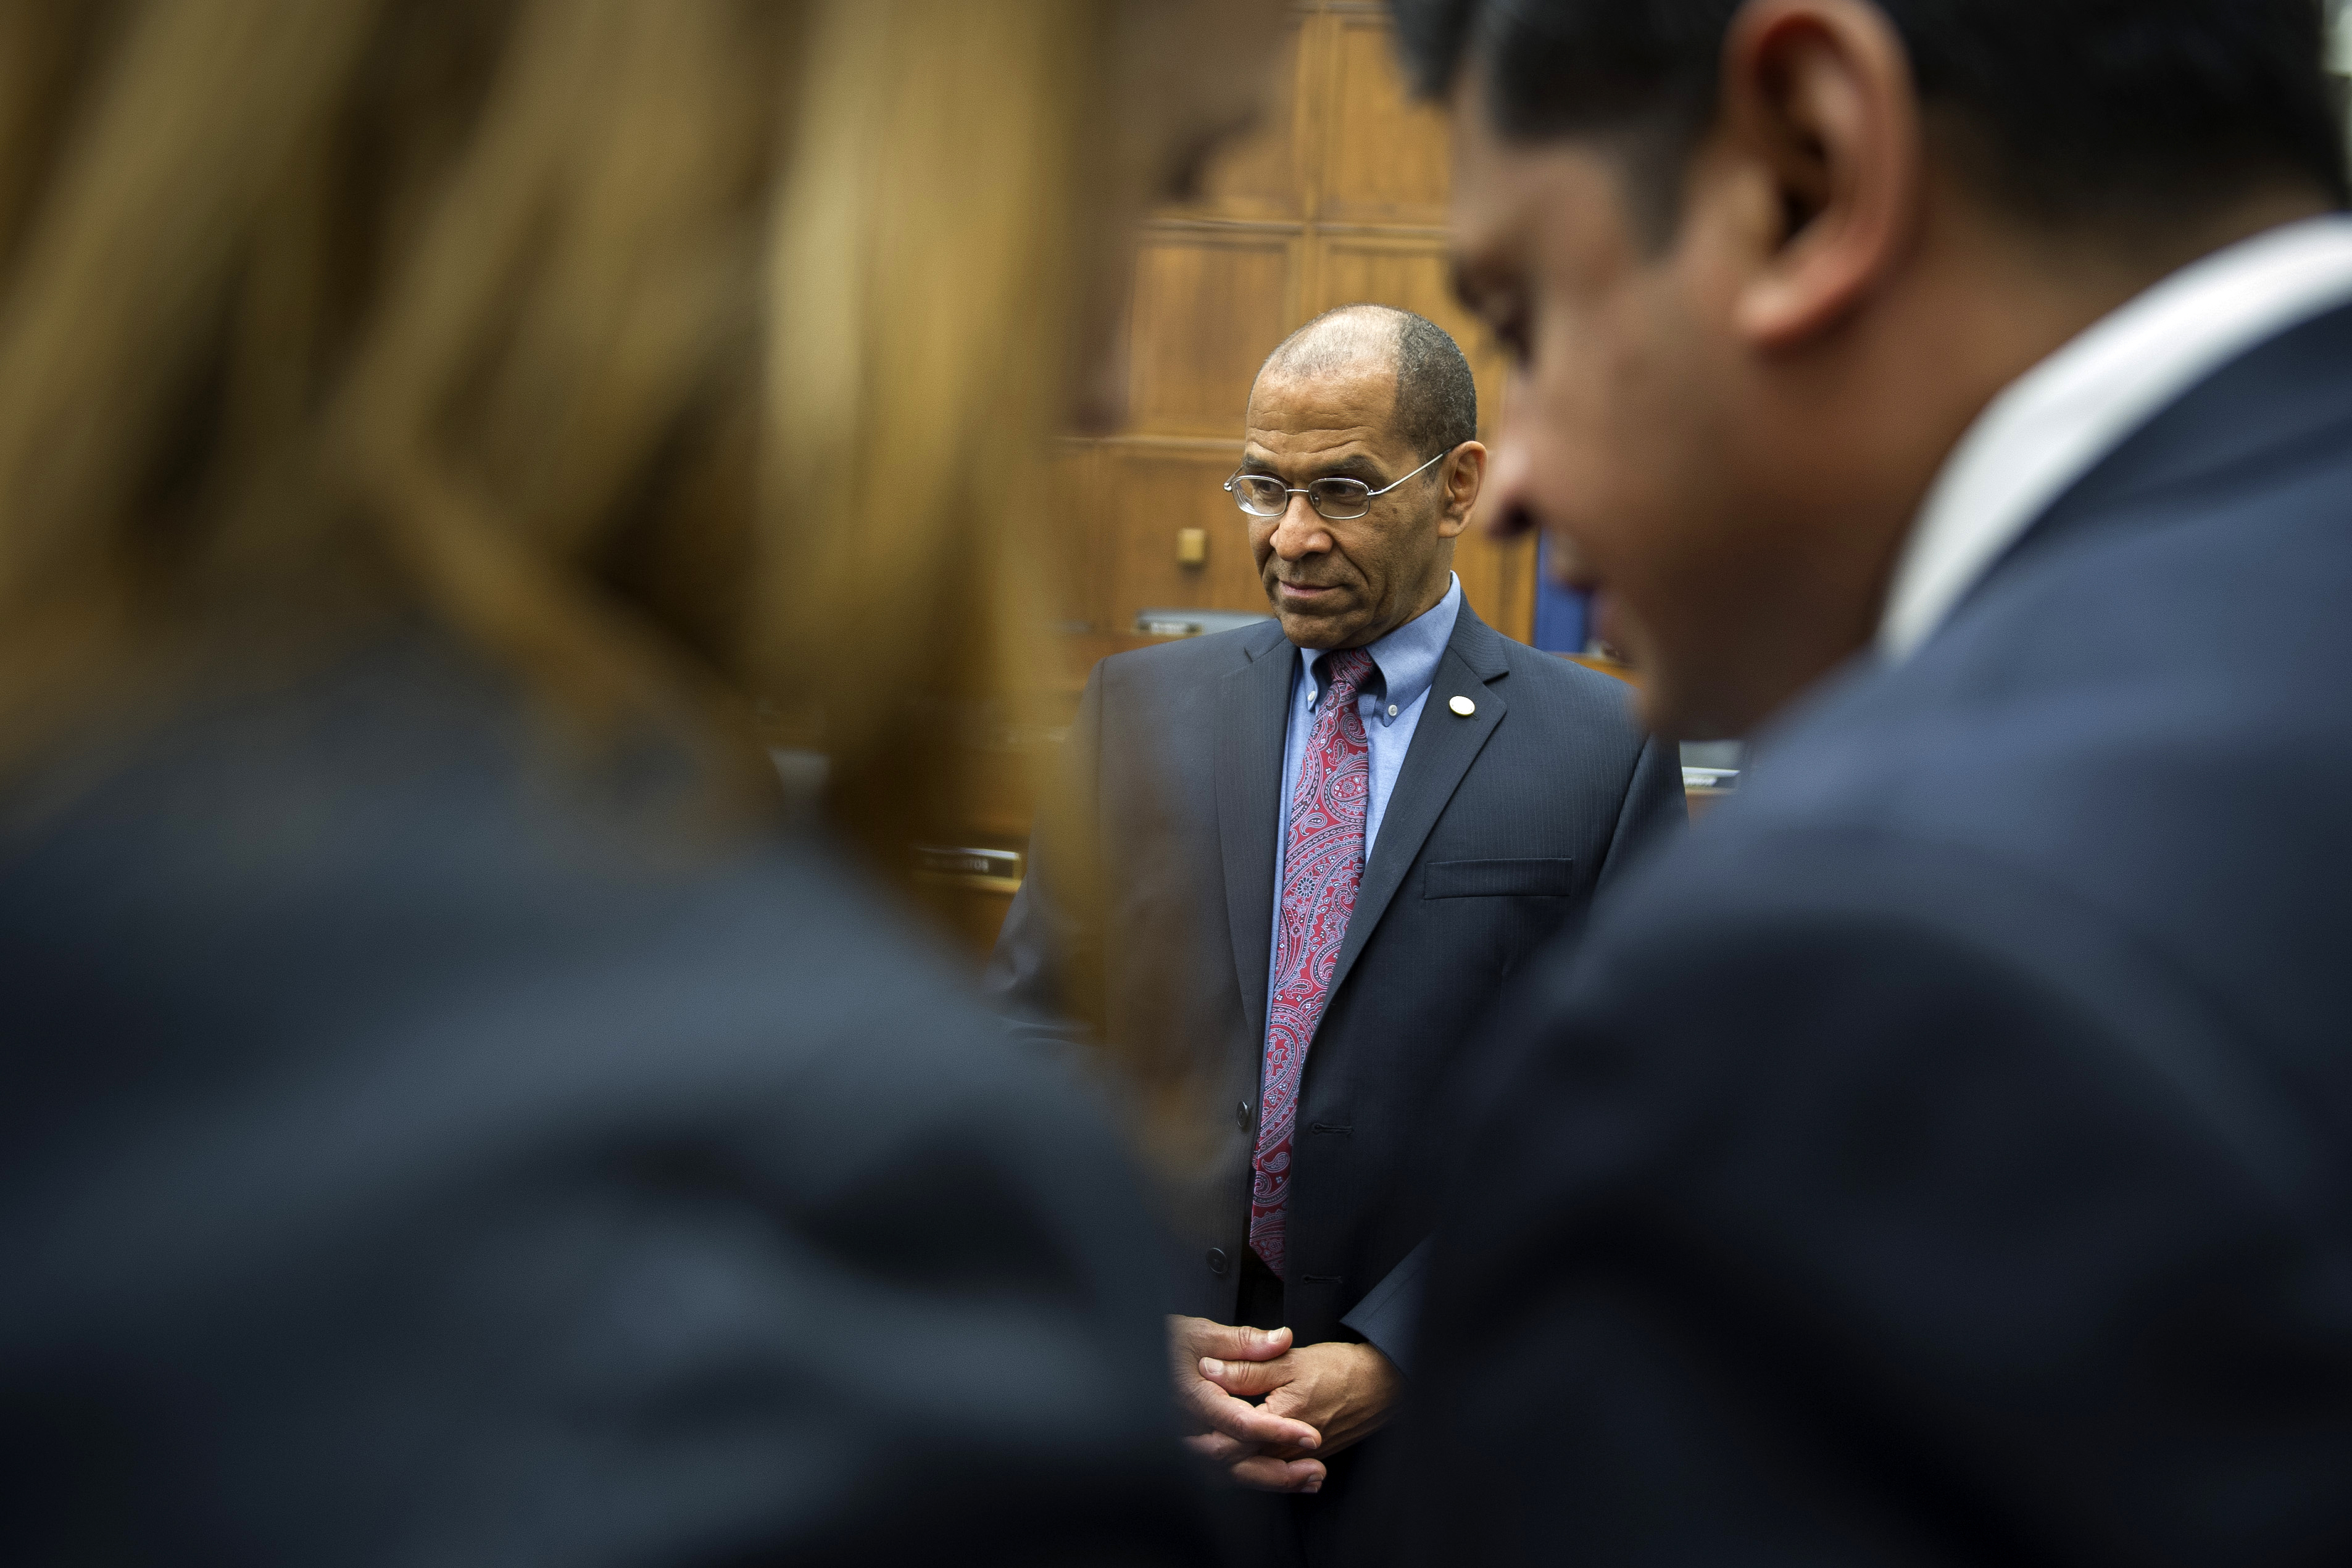 National Transportation Safety Board (NTSB) Chairman Christopher Hart, center, waits with his staff on Capitol Hill in Washington, June 2, 2015, prior to testifying before the House Transportation and Infrastructure Committee oversight hearing of the Amtrak train derailment in Philadelphia.